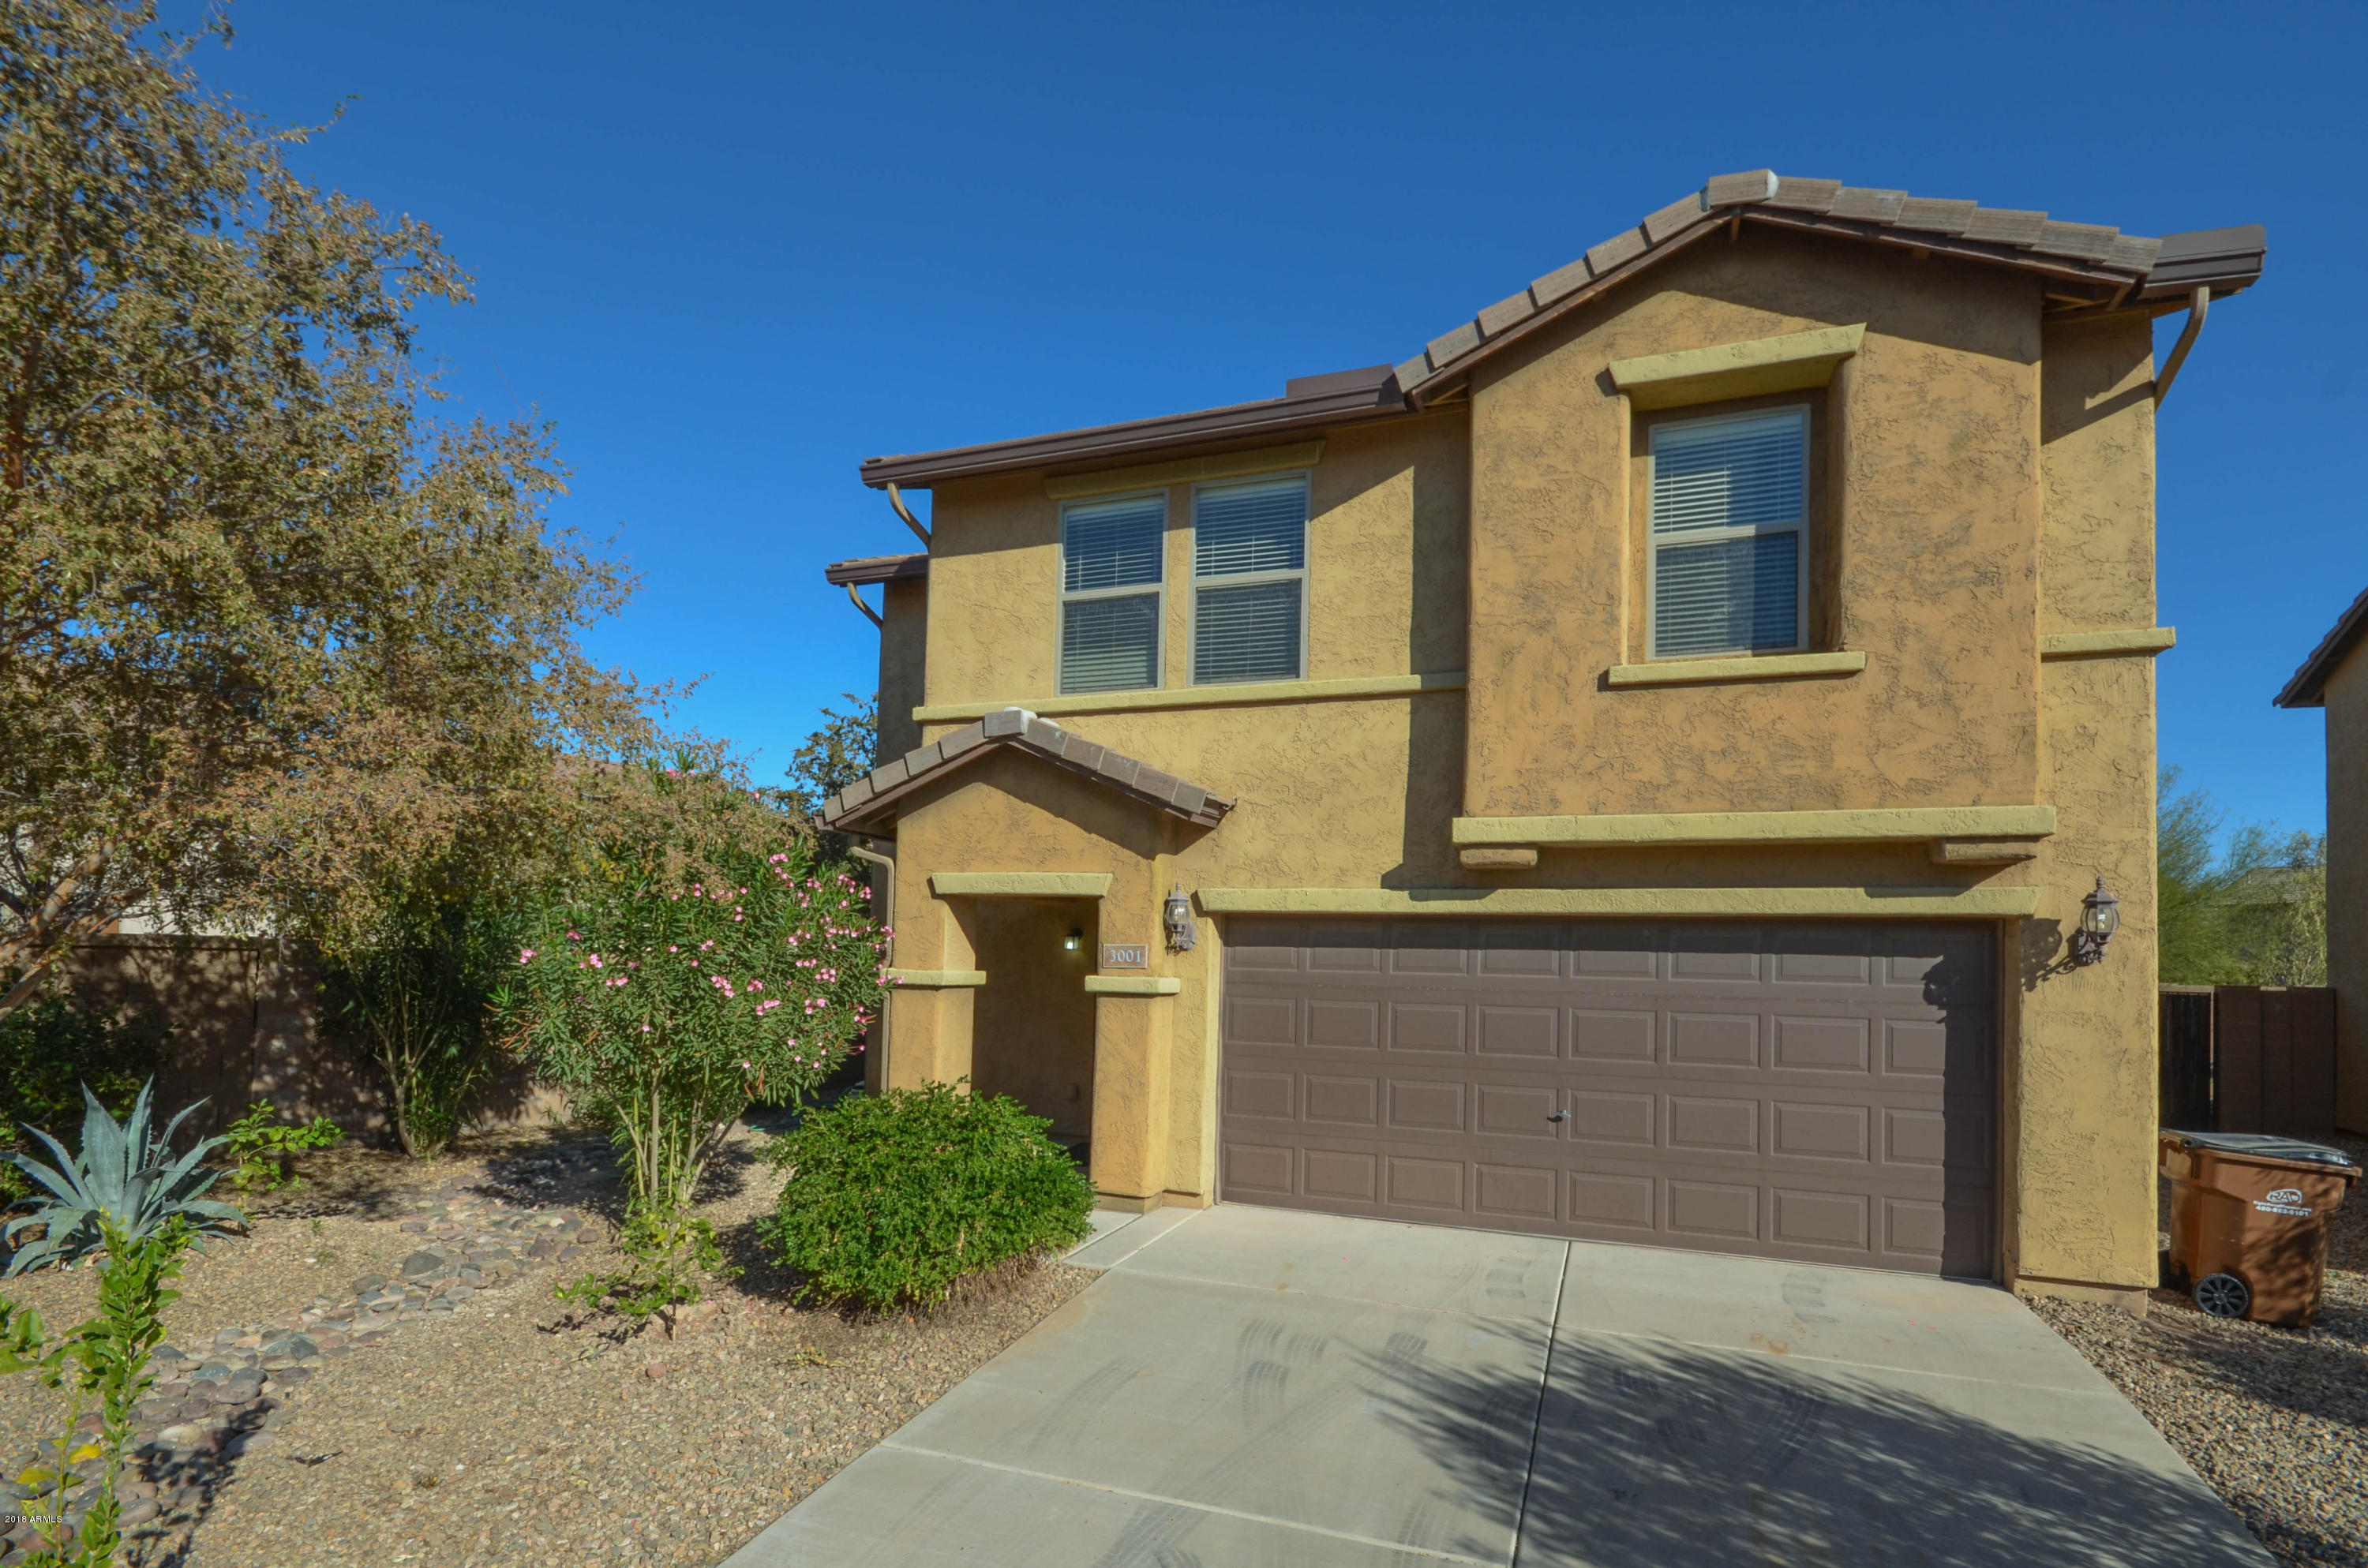 Photo for 3001 N Daisy Drive, Florence, AZ 85132 (MLS # 5851469)